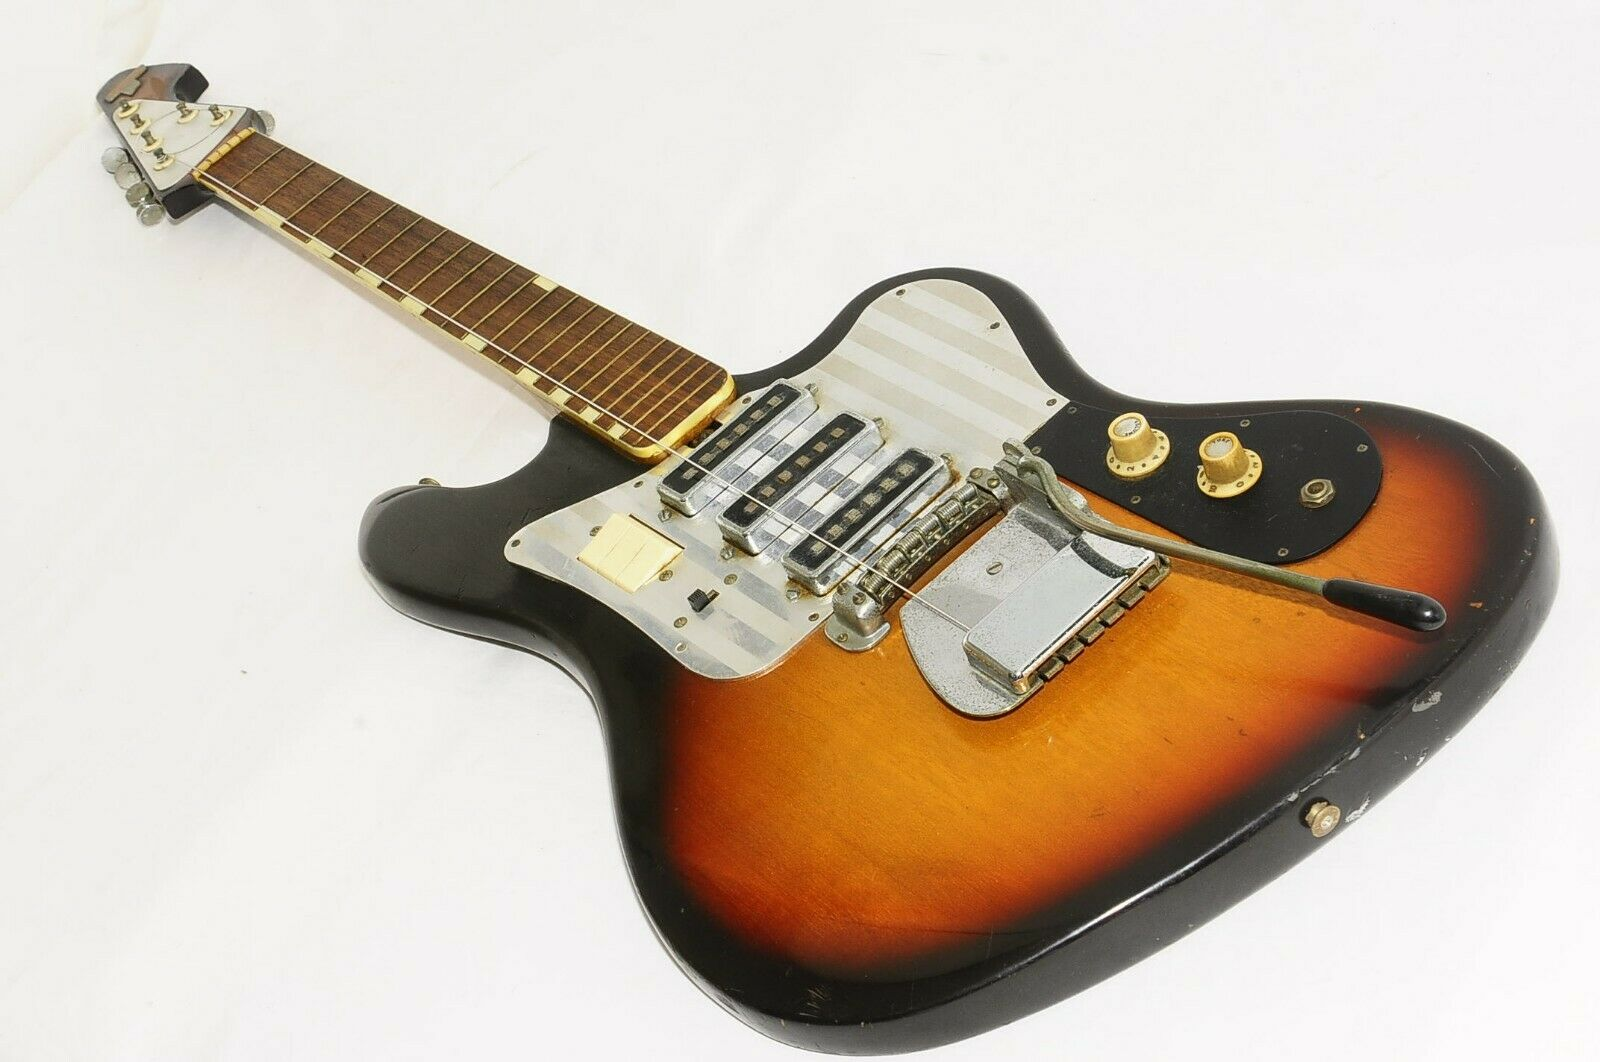 TECISCO Zigaretten Sunburst Electric Guitar RefNo